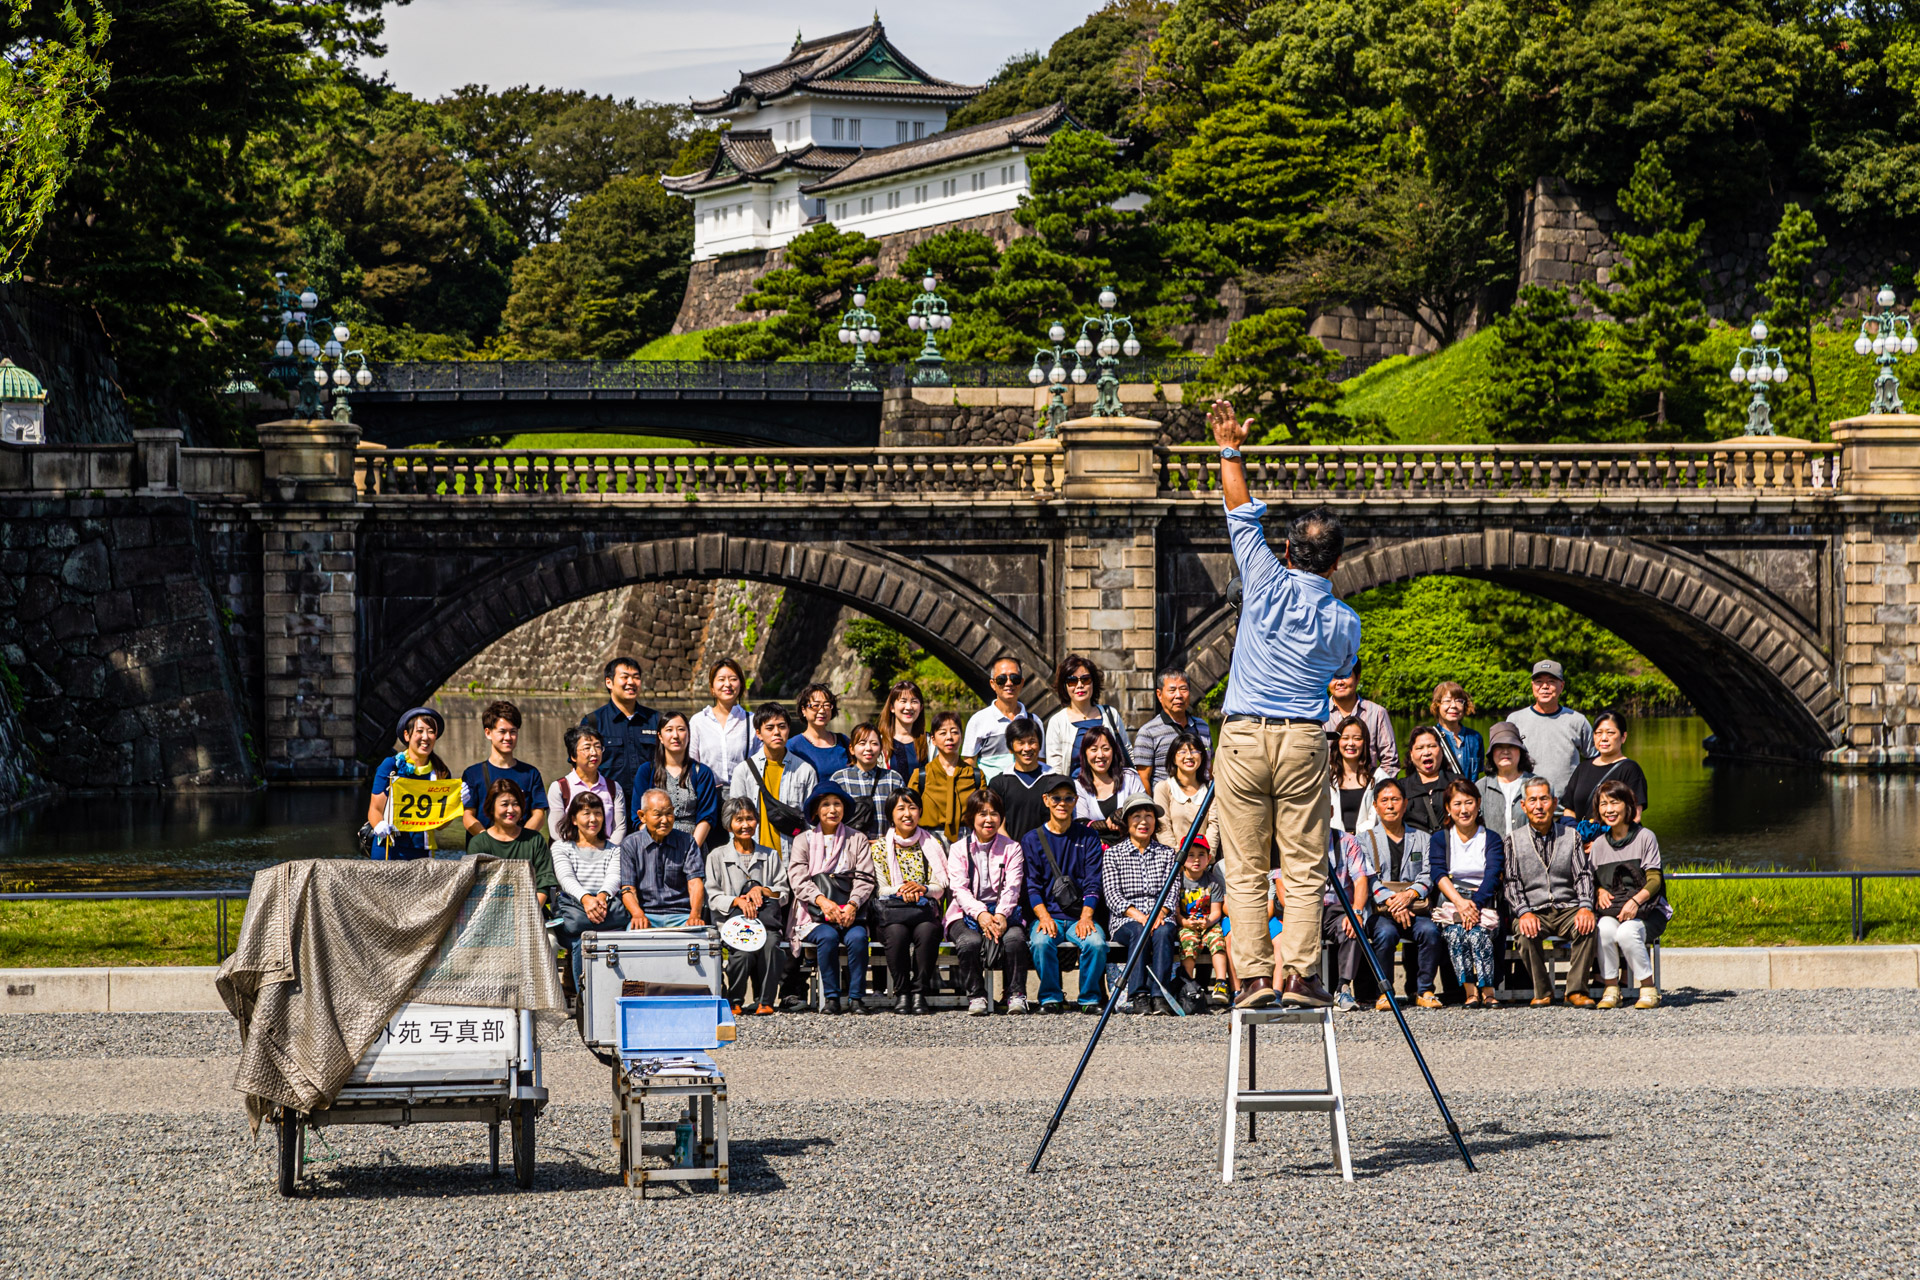 Group photographer demands attention in front of the Japanese Imperial Palace. Photoshooting in front of the Tenno Palace in Chiyoda (Tokyo), Japan